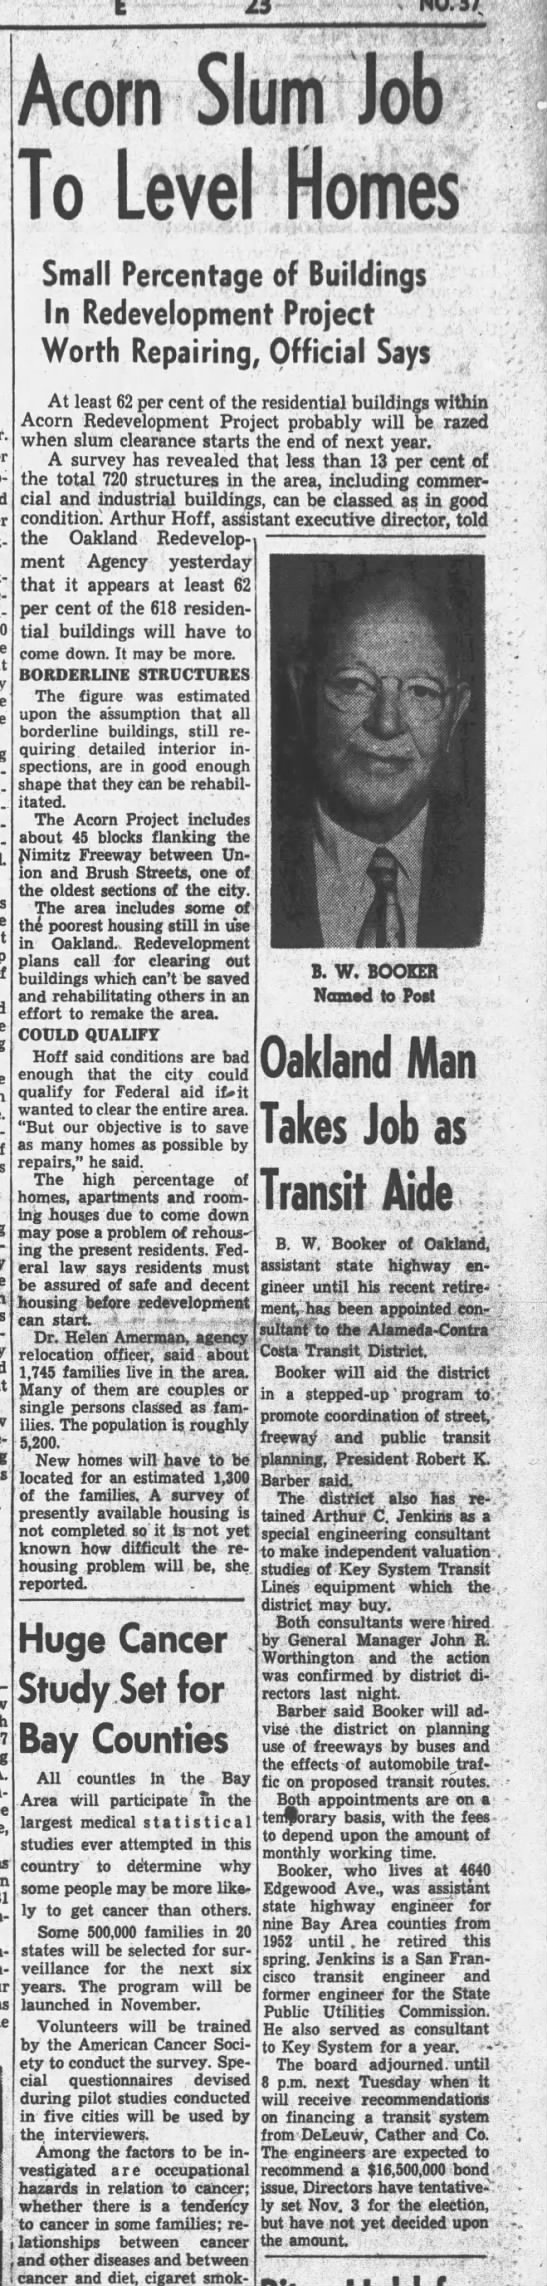 Acorn Slum Job To Level Homes - Oakland Tribune Aug 6, 1959 -